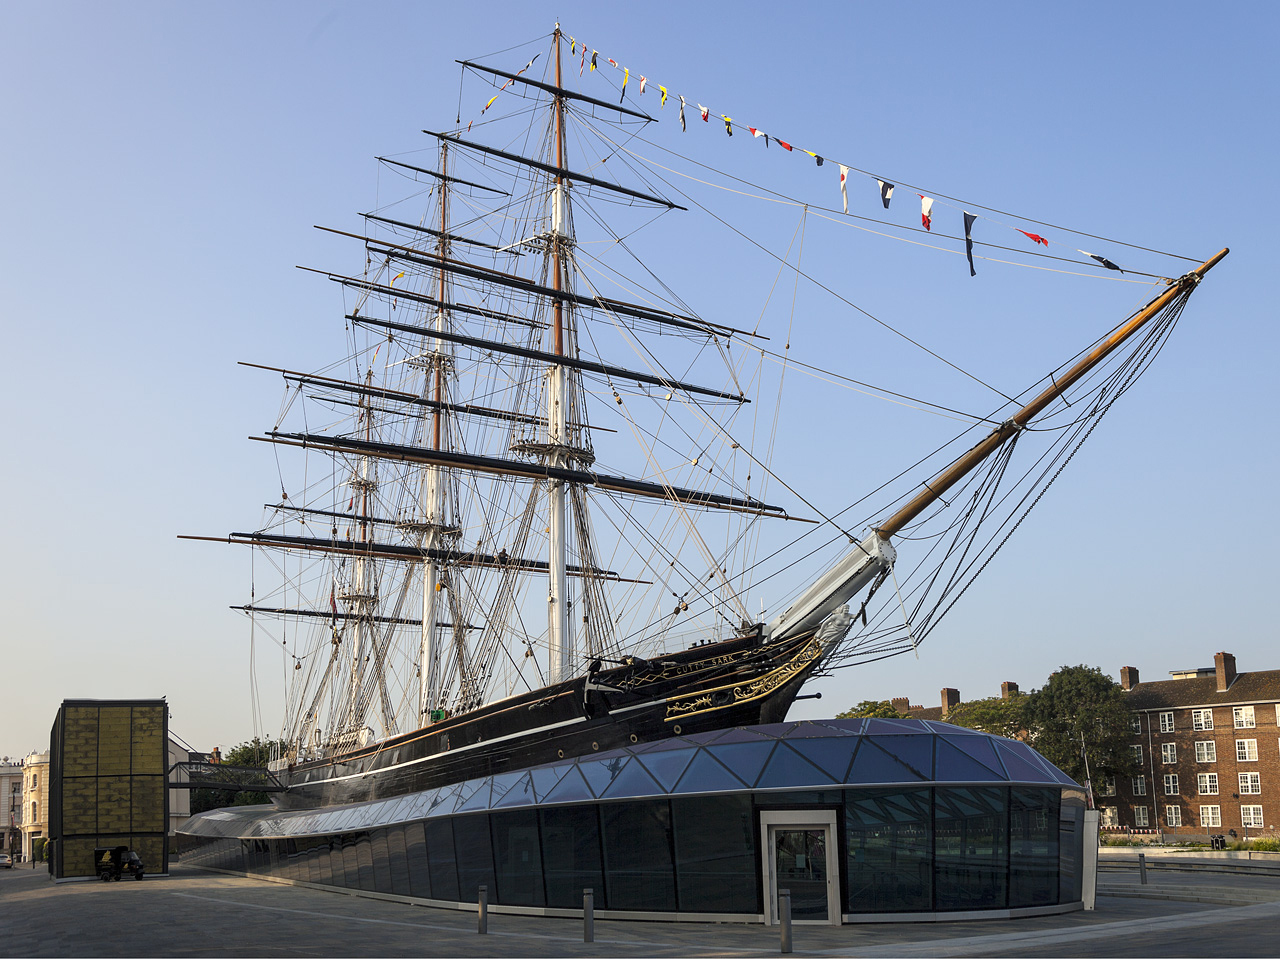 The Cutty Sark in all its glory.